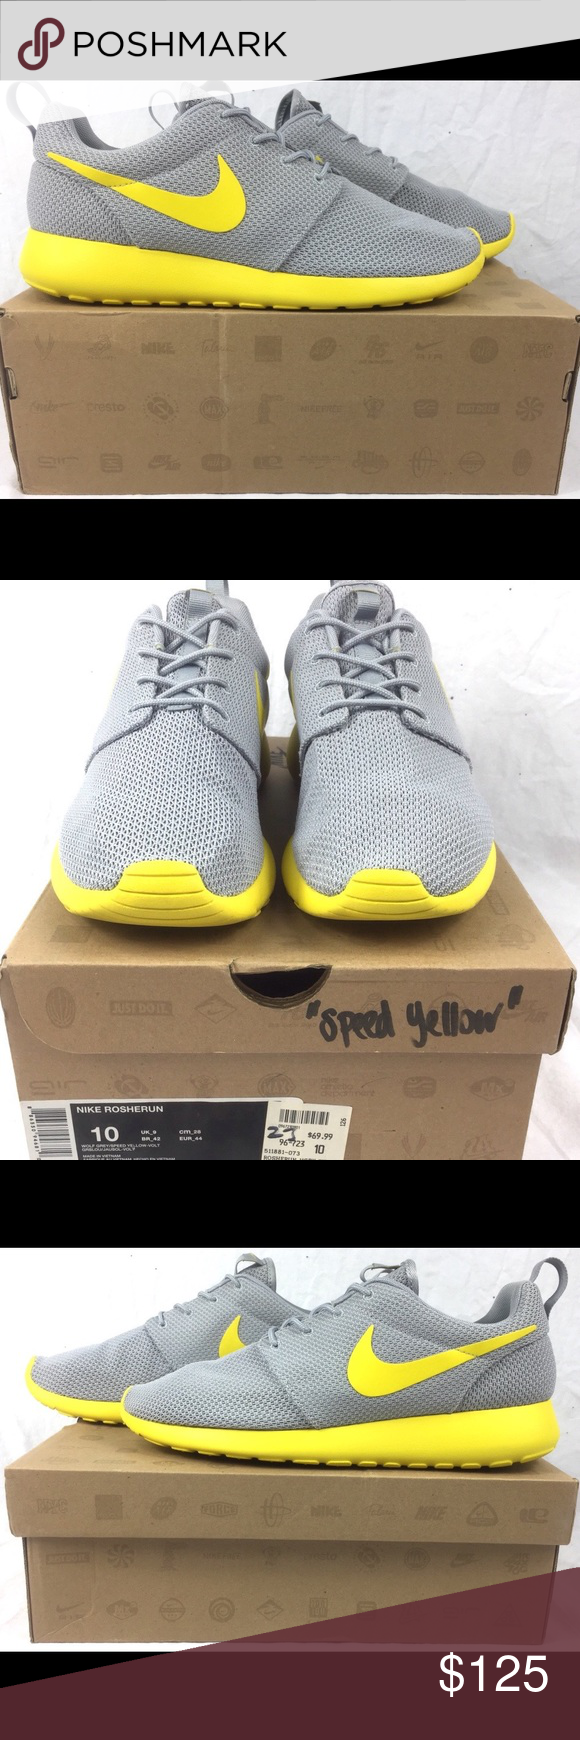 e15361ed124e5 where to buy nike roshe run speed yellow mens running shoes shoes are in  beautiful condition